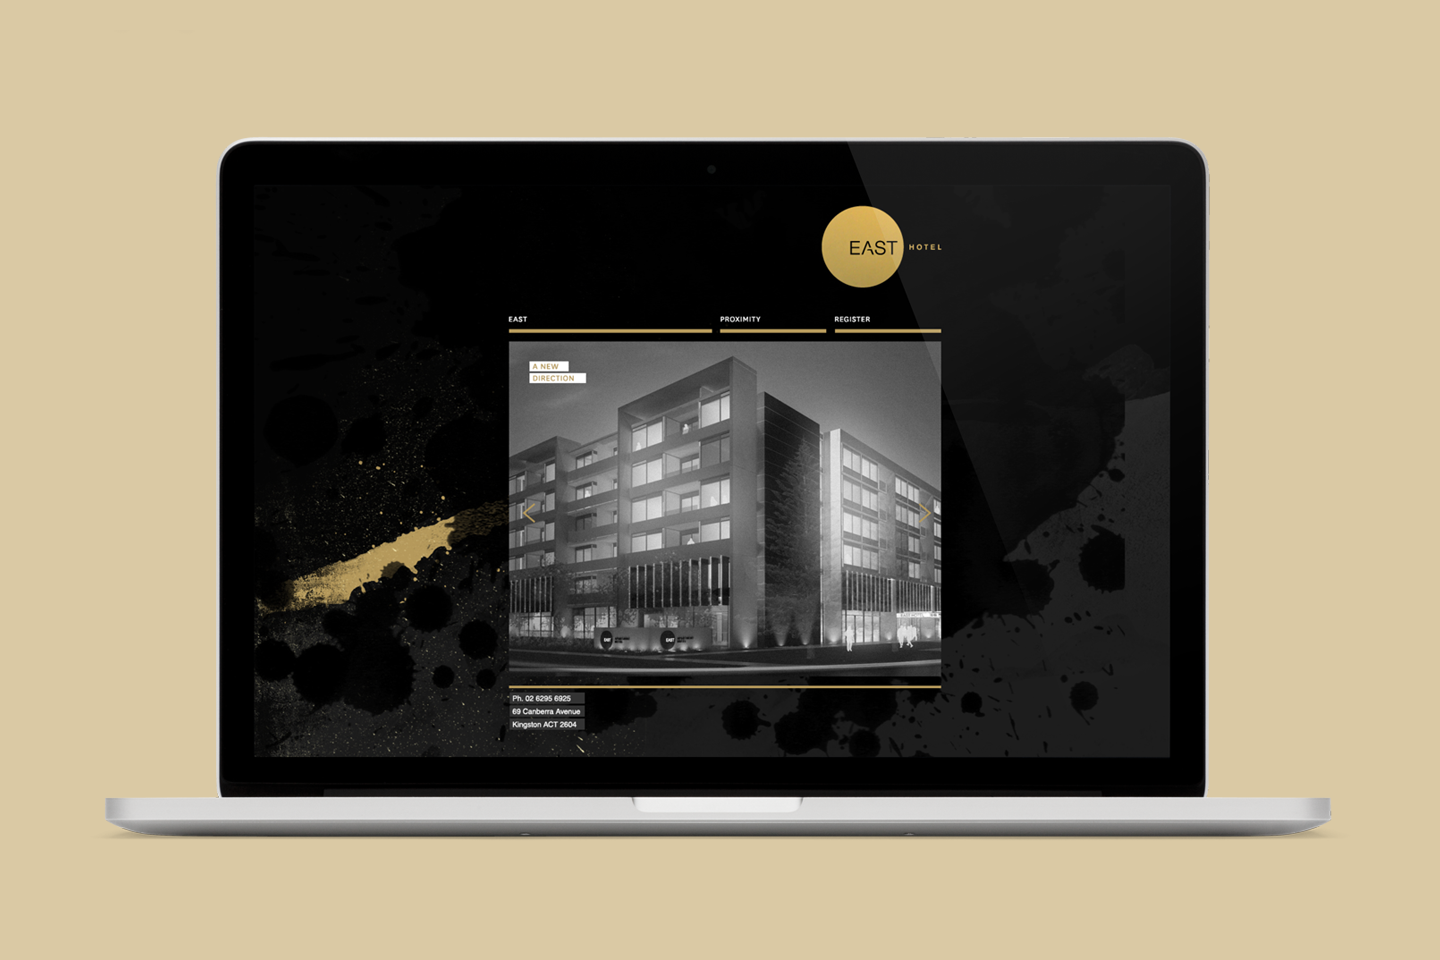 Eas hotel website